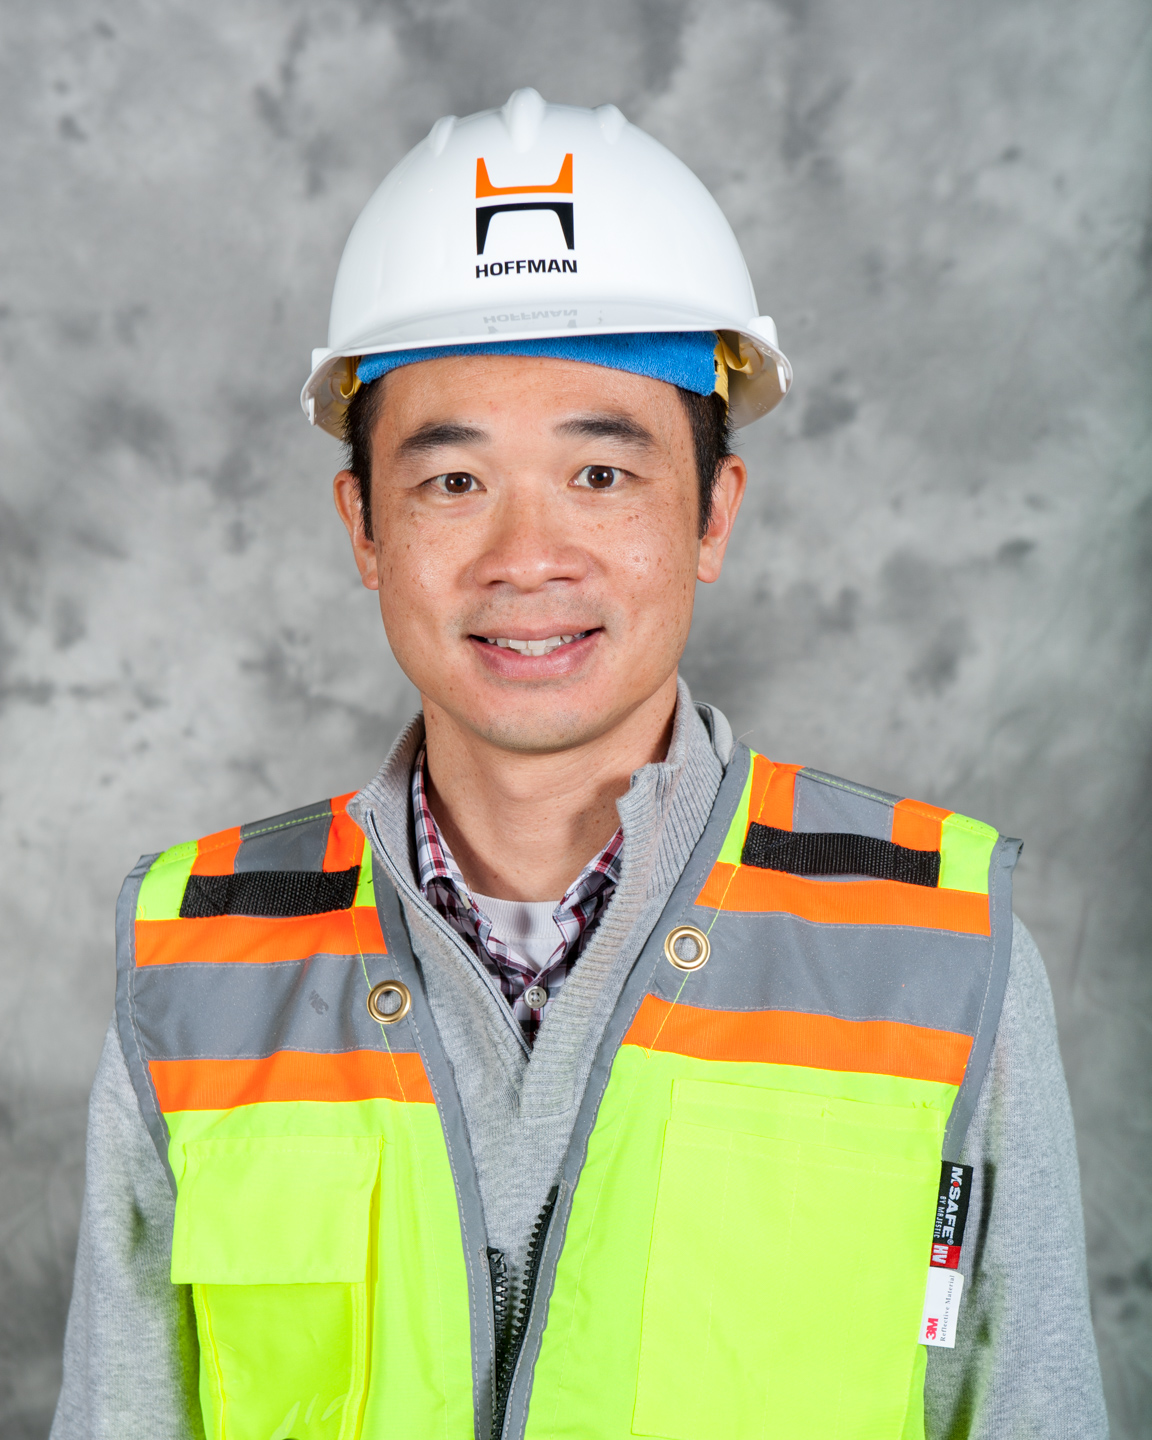 Hoffman Construction Team Portraits